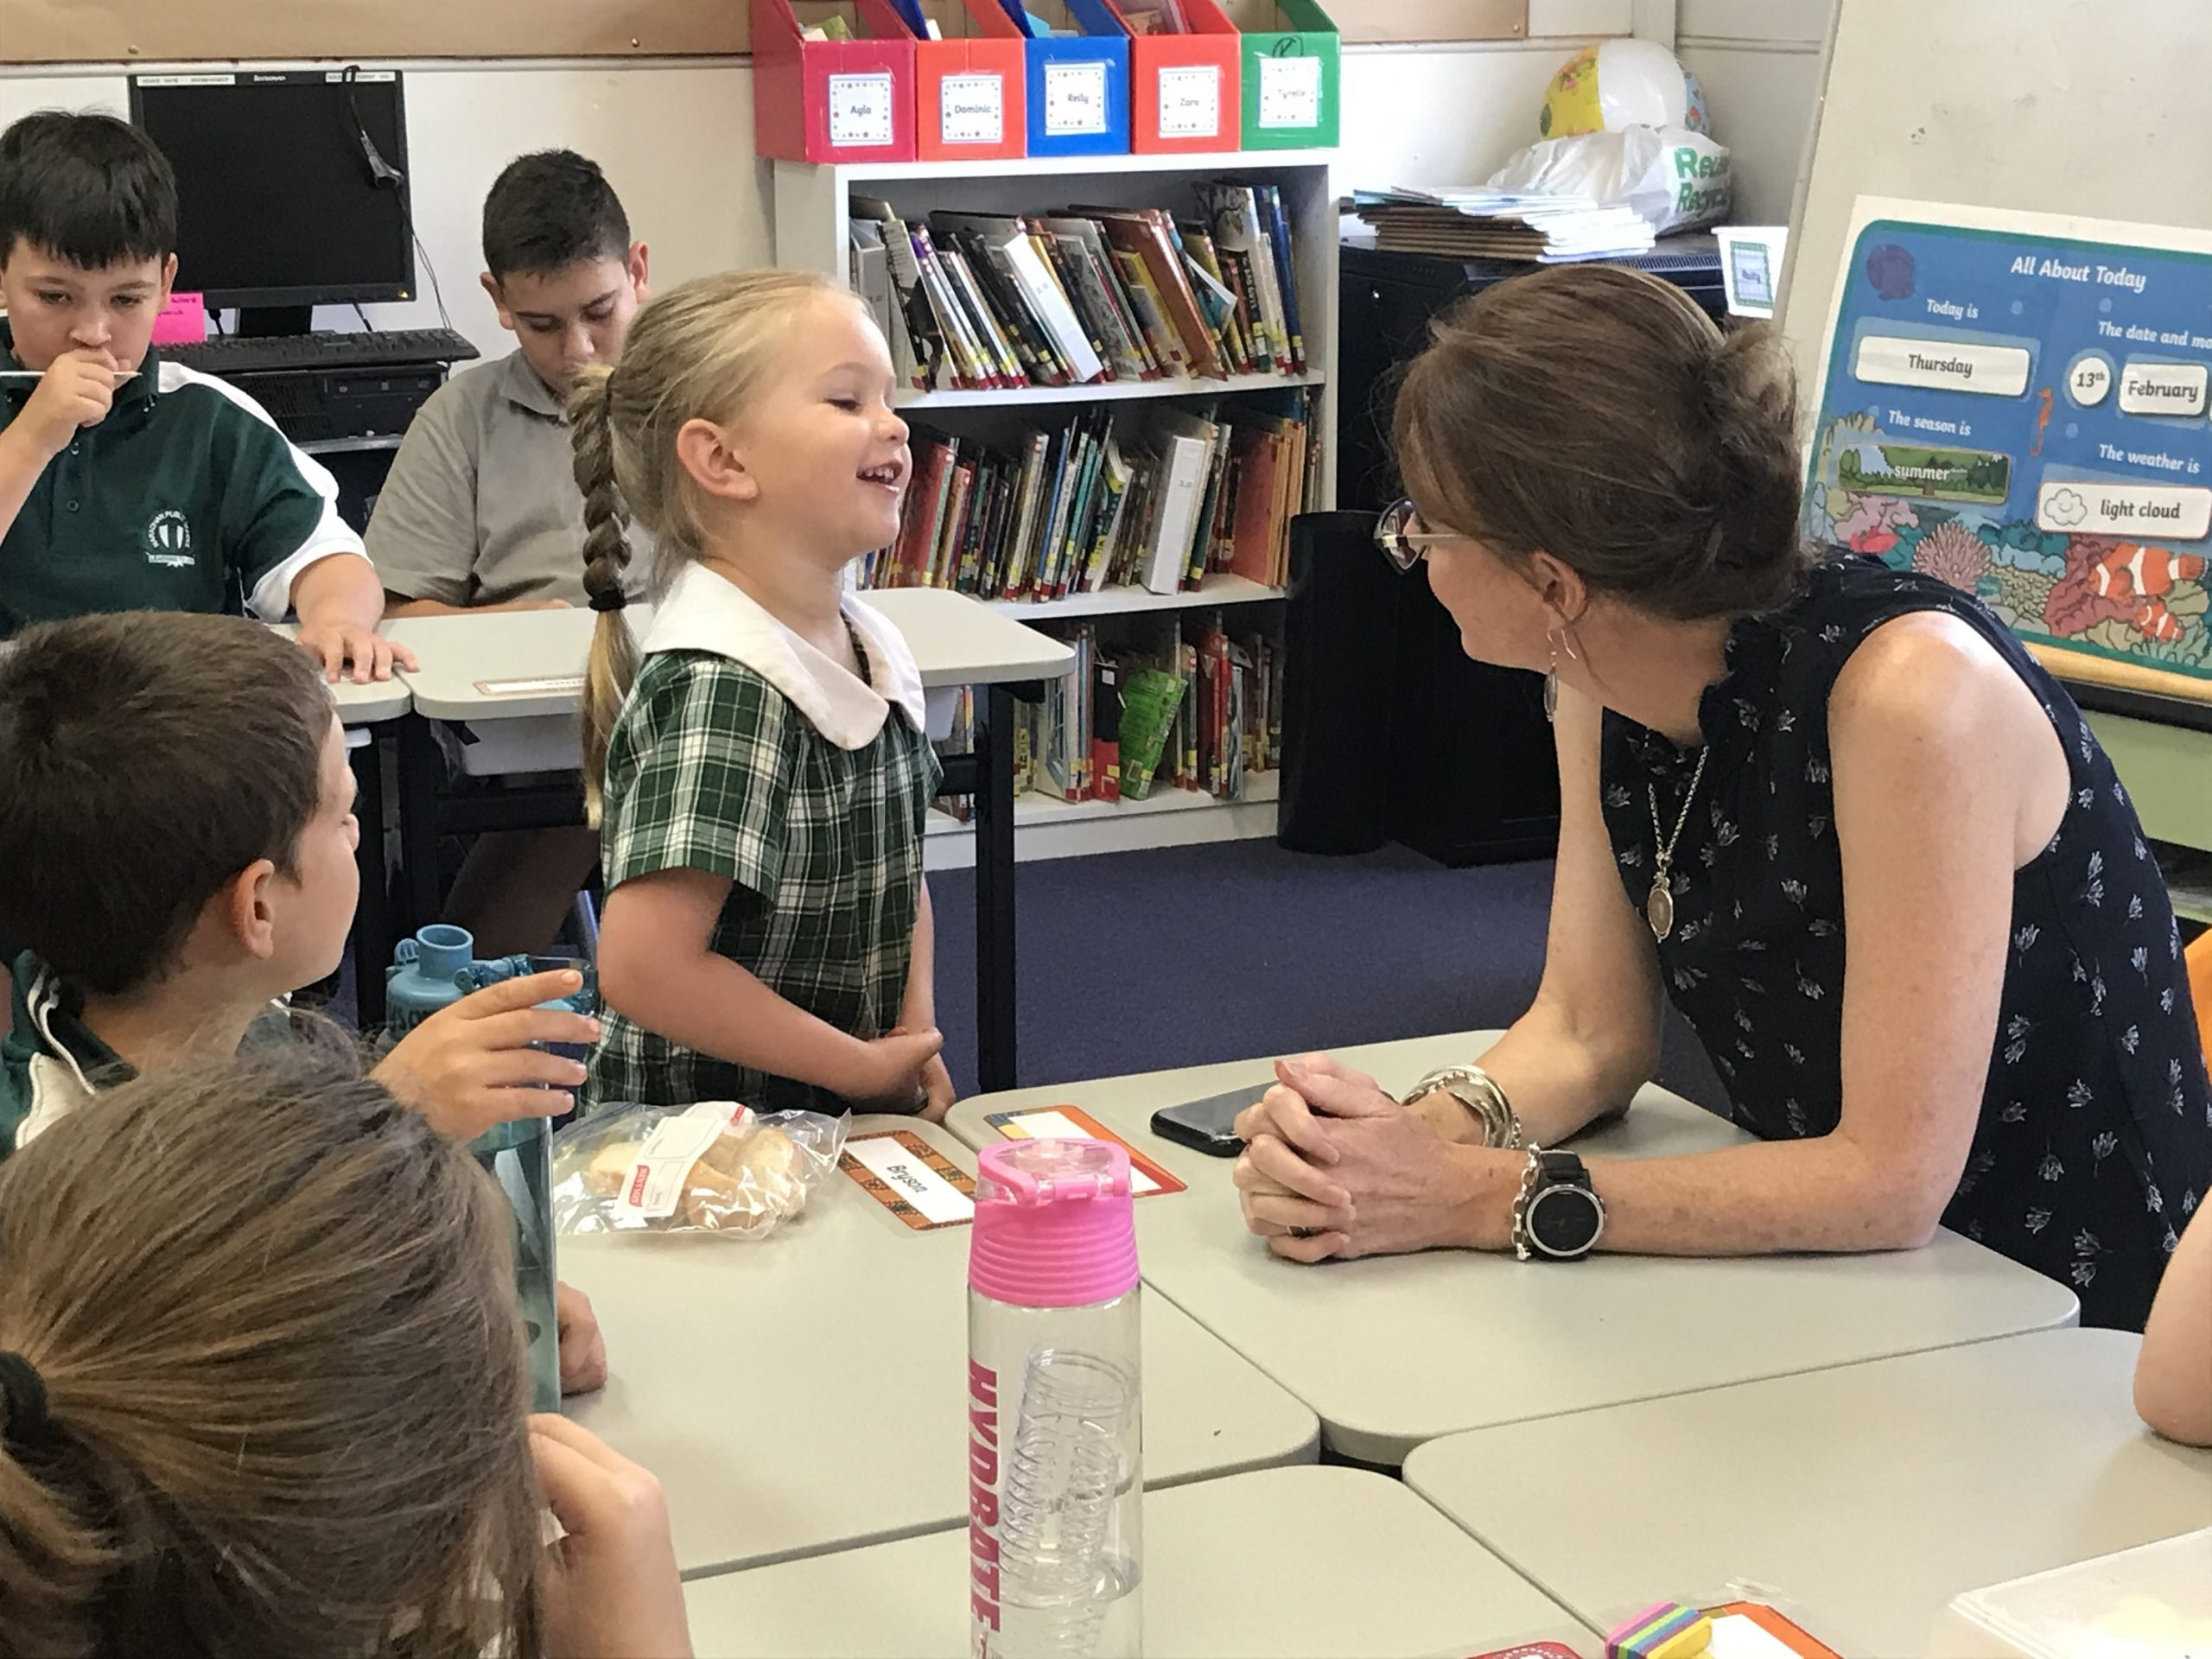 A primary school student laughs and smiles at Steph Cooke, who sits at a primary-sized desk in a classroom.